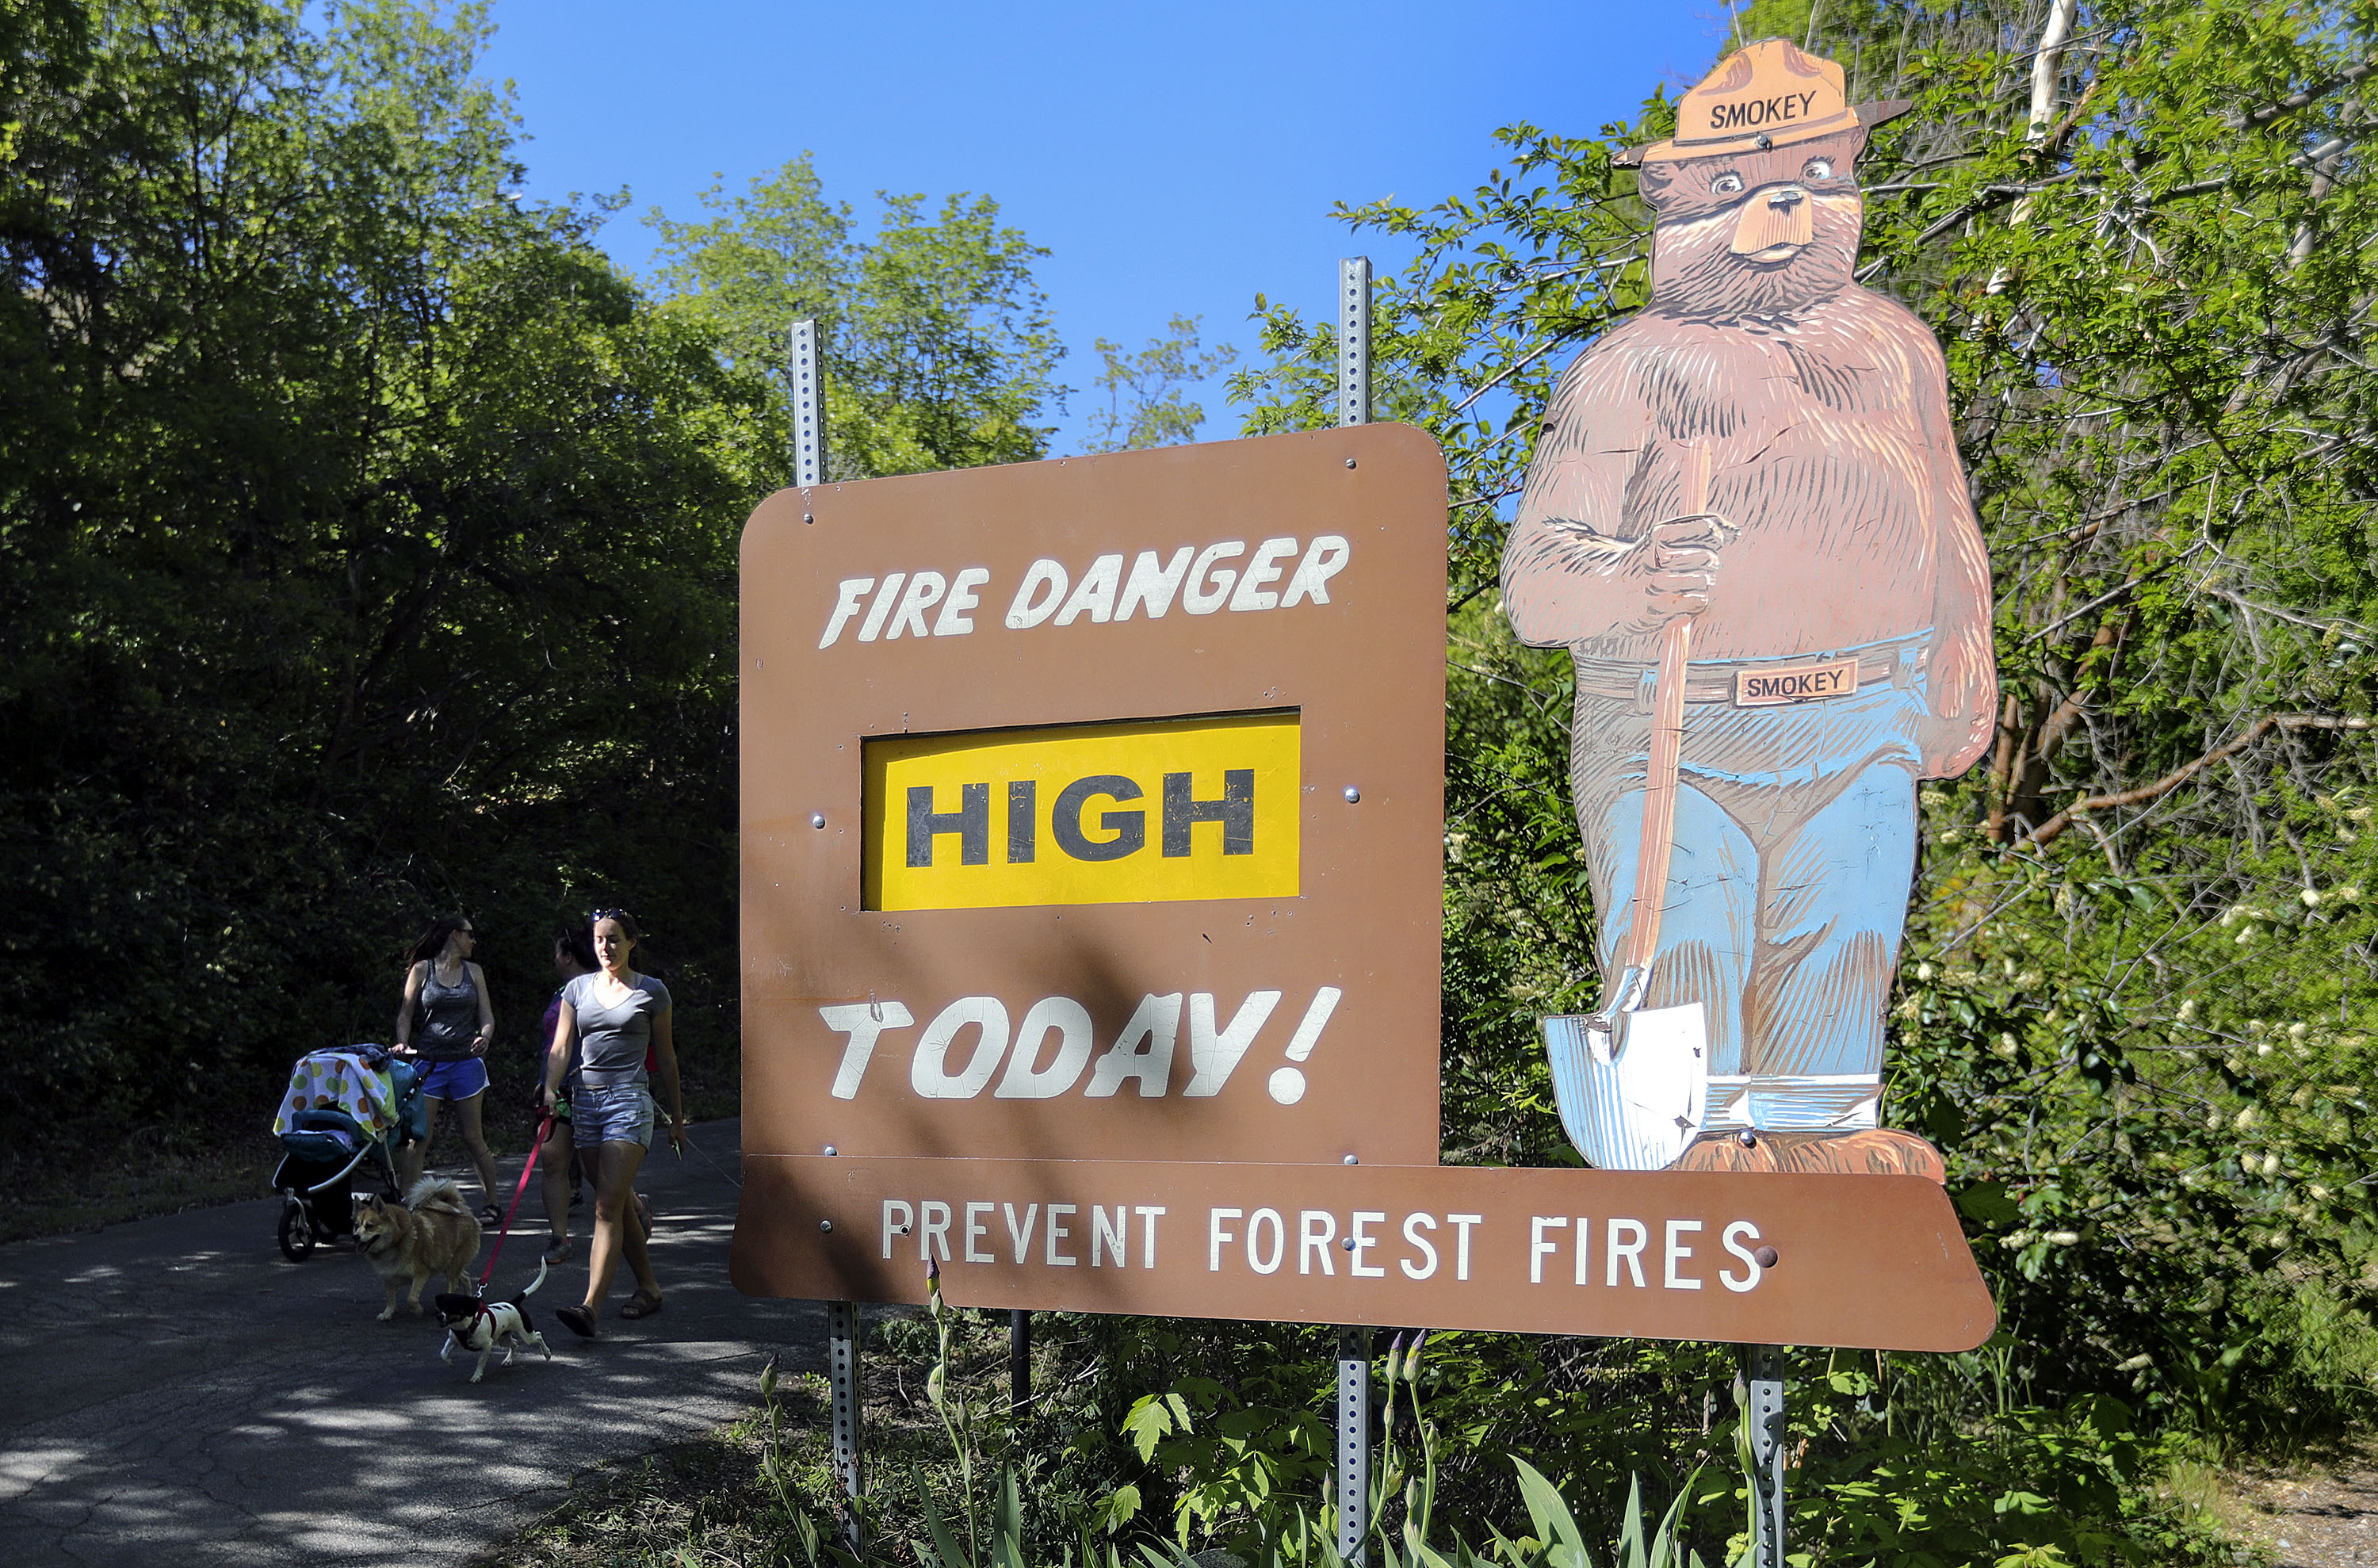 """A fire danger sign is shown reading """"High"""" in City Creek Canyon in Salt Lake City as two people walk by."""